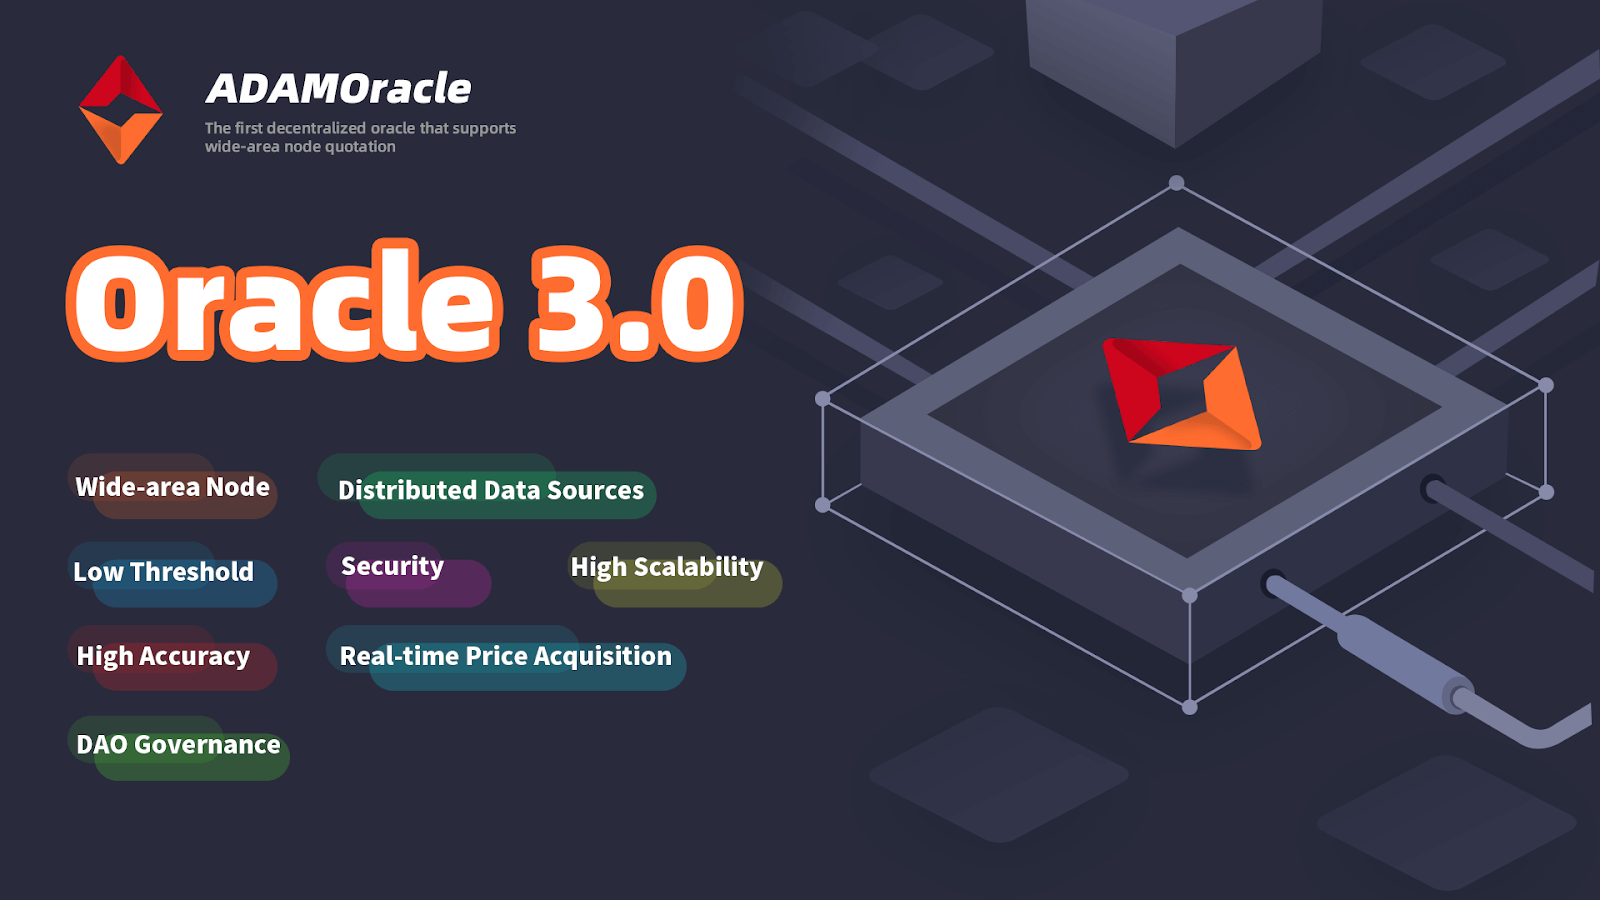 What should we expect from ADAMoracle in the era of Oracle 3.0?